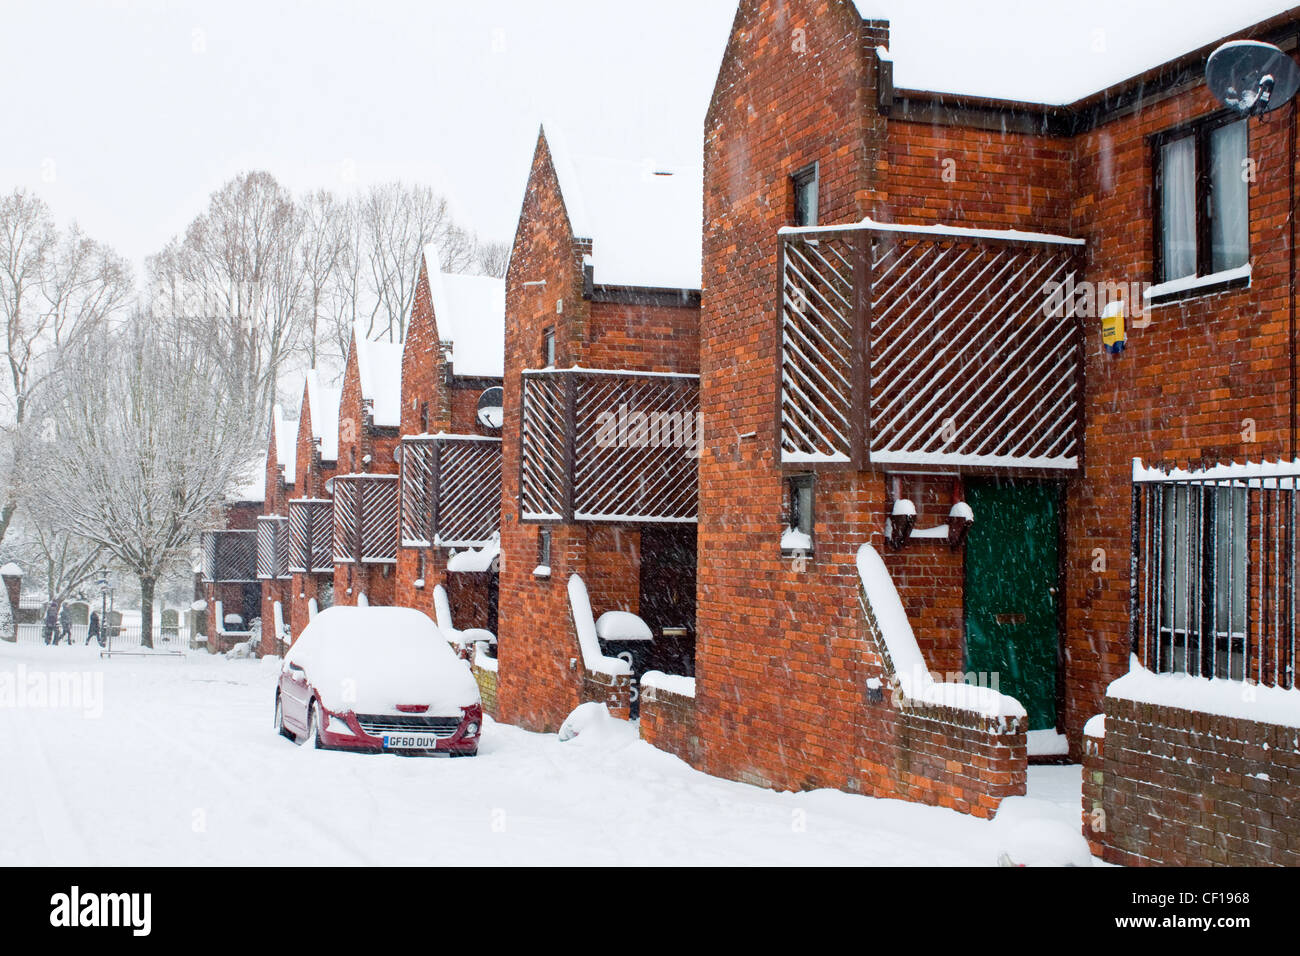 Canterbury UK Gas Street Snow covered street winter scene Stock Photo